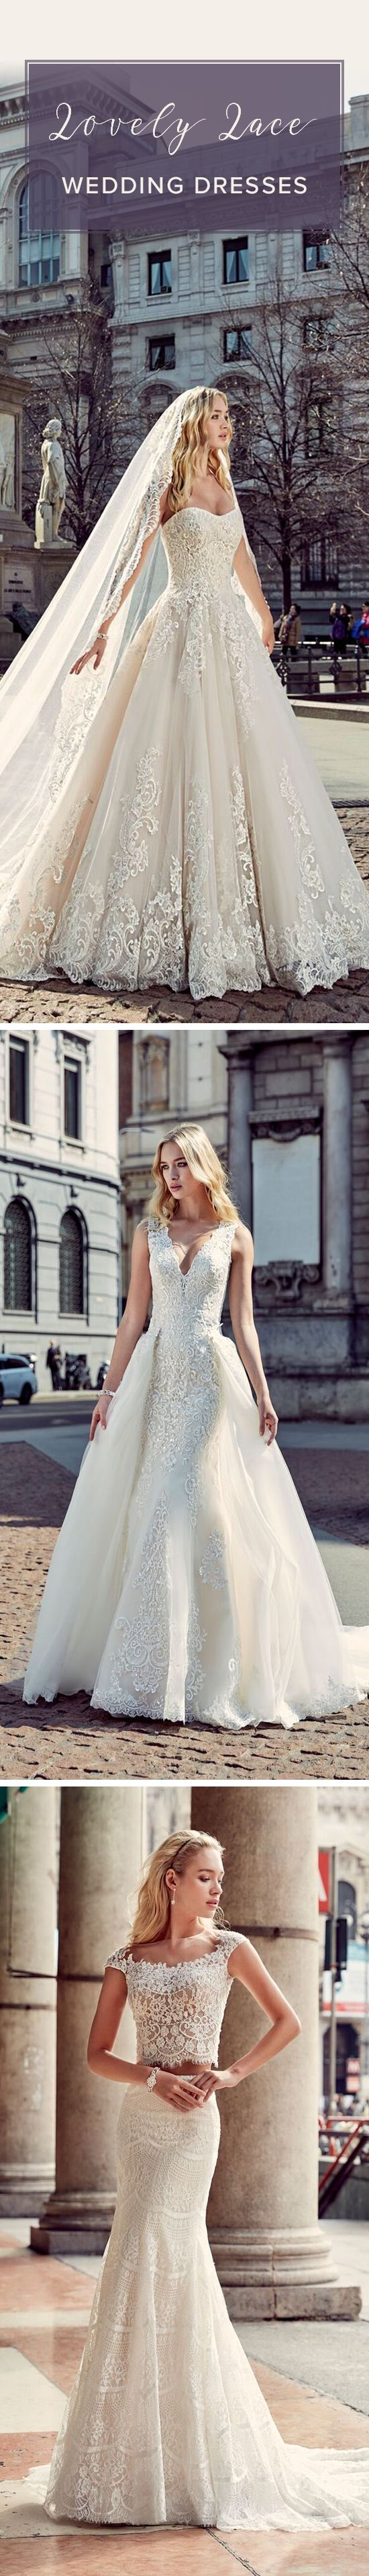 10 Lovely Lace Wedding Dresses - Looking for the perfect lace wedding gown? Fall in love with @eddkybridal's Italian-inspired wedding dresses on @weddingwire!